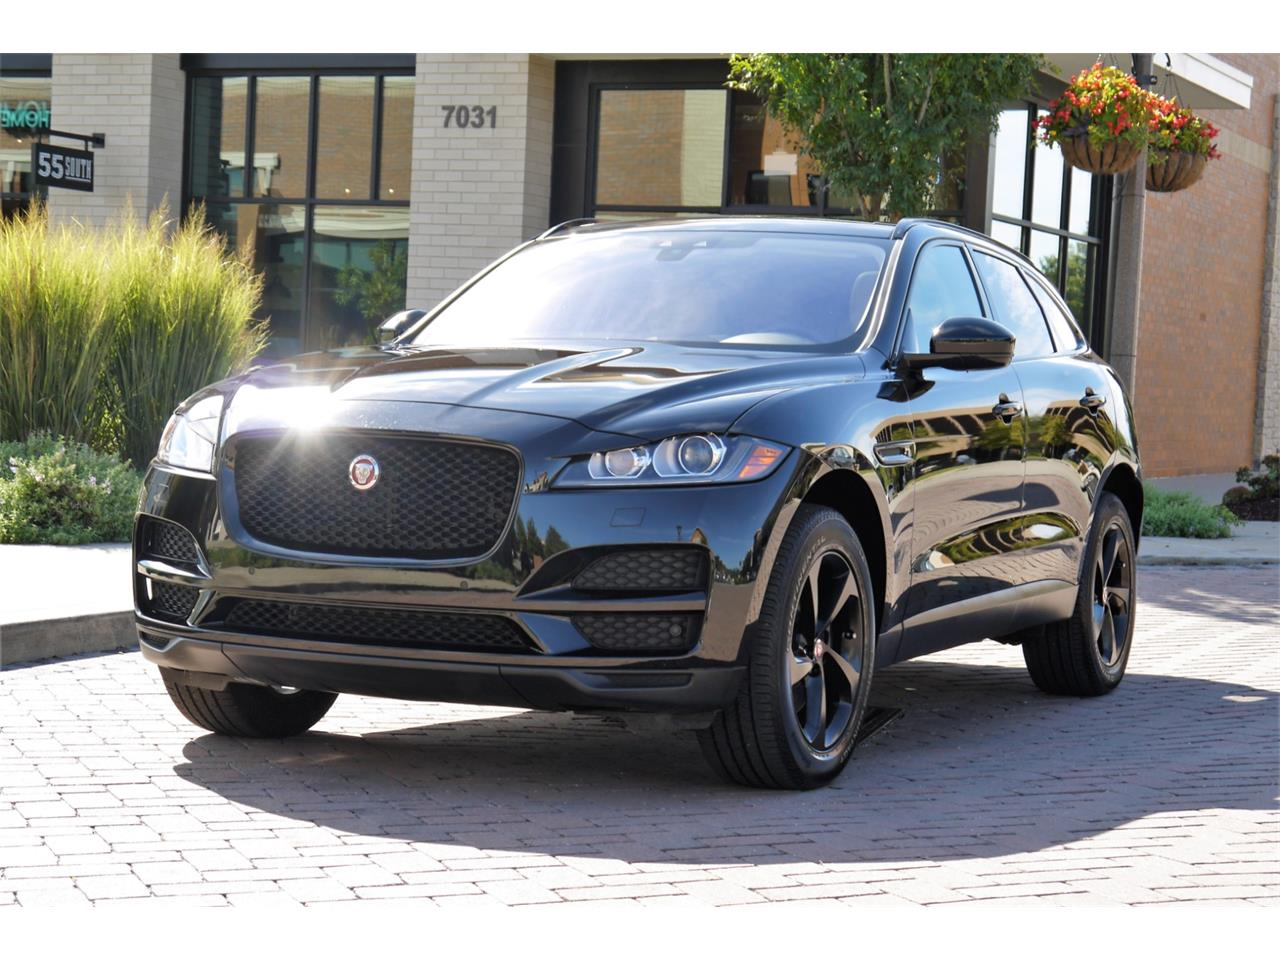 Large Picture of '17 Jaguar F-PACE - $49,800.00 Offered by Arde Motorcars - OOIB